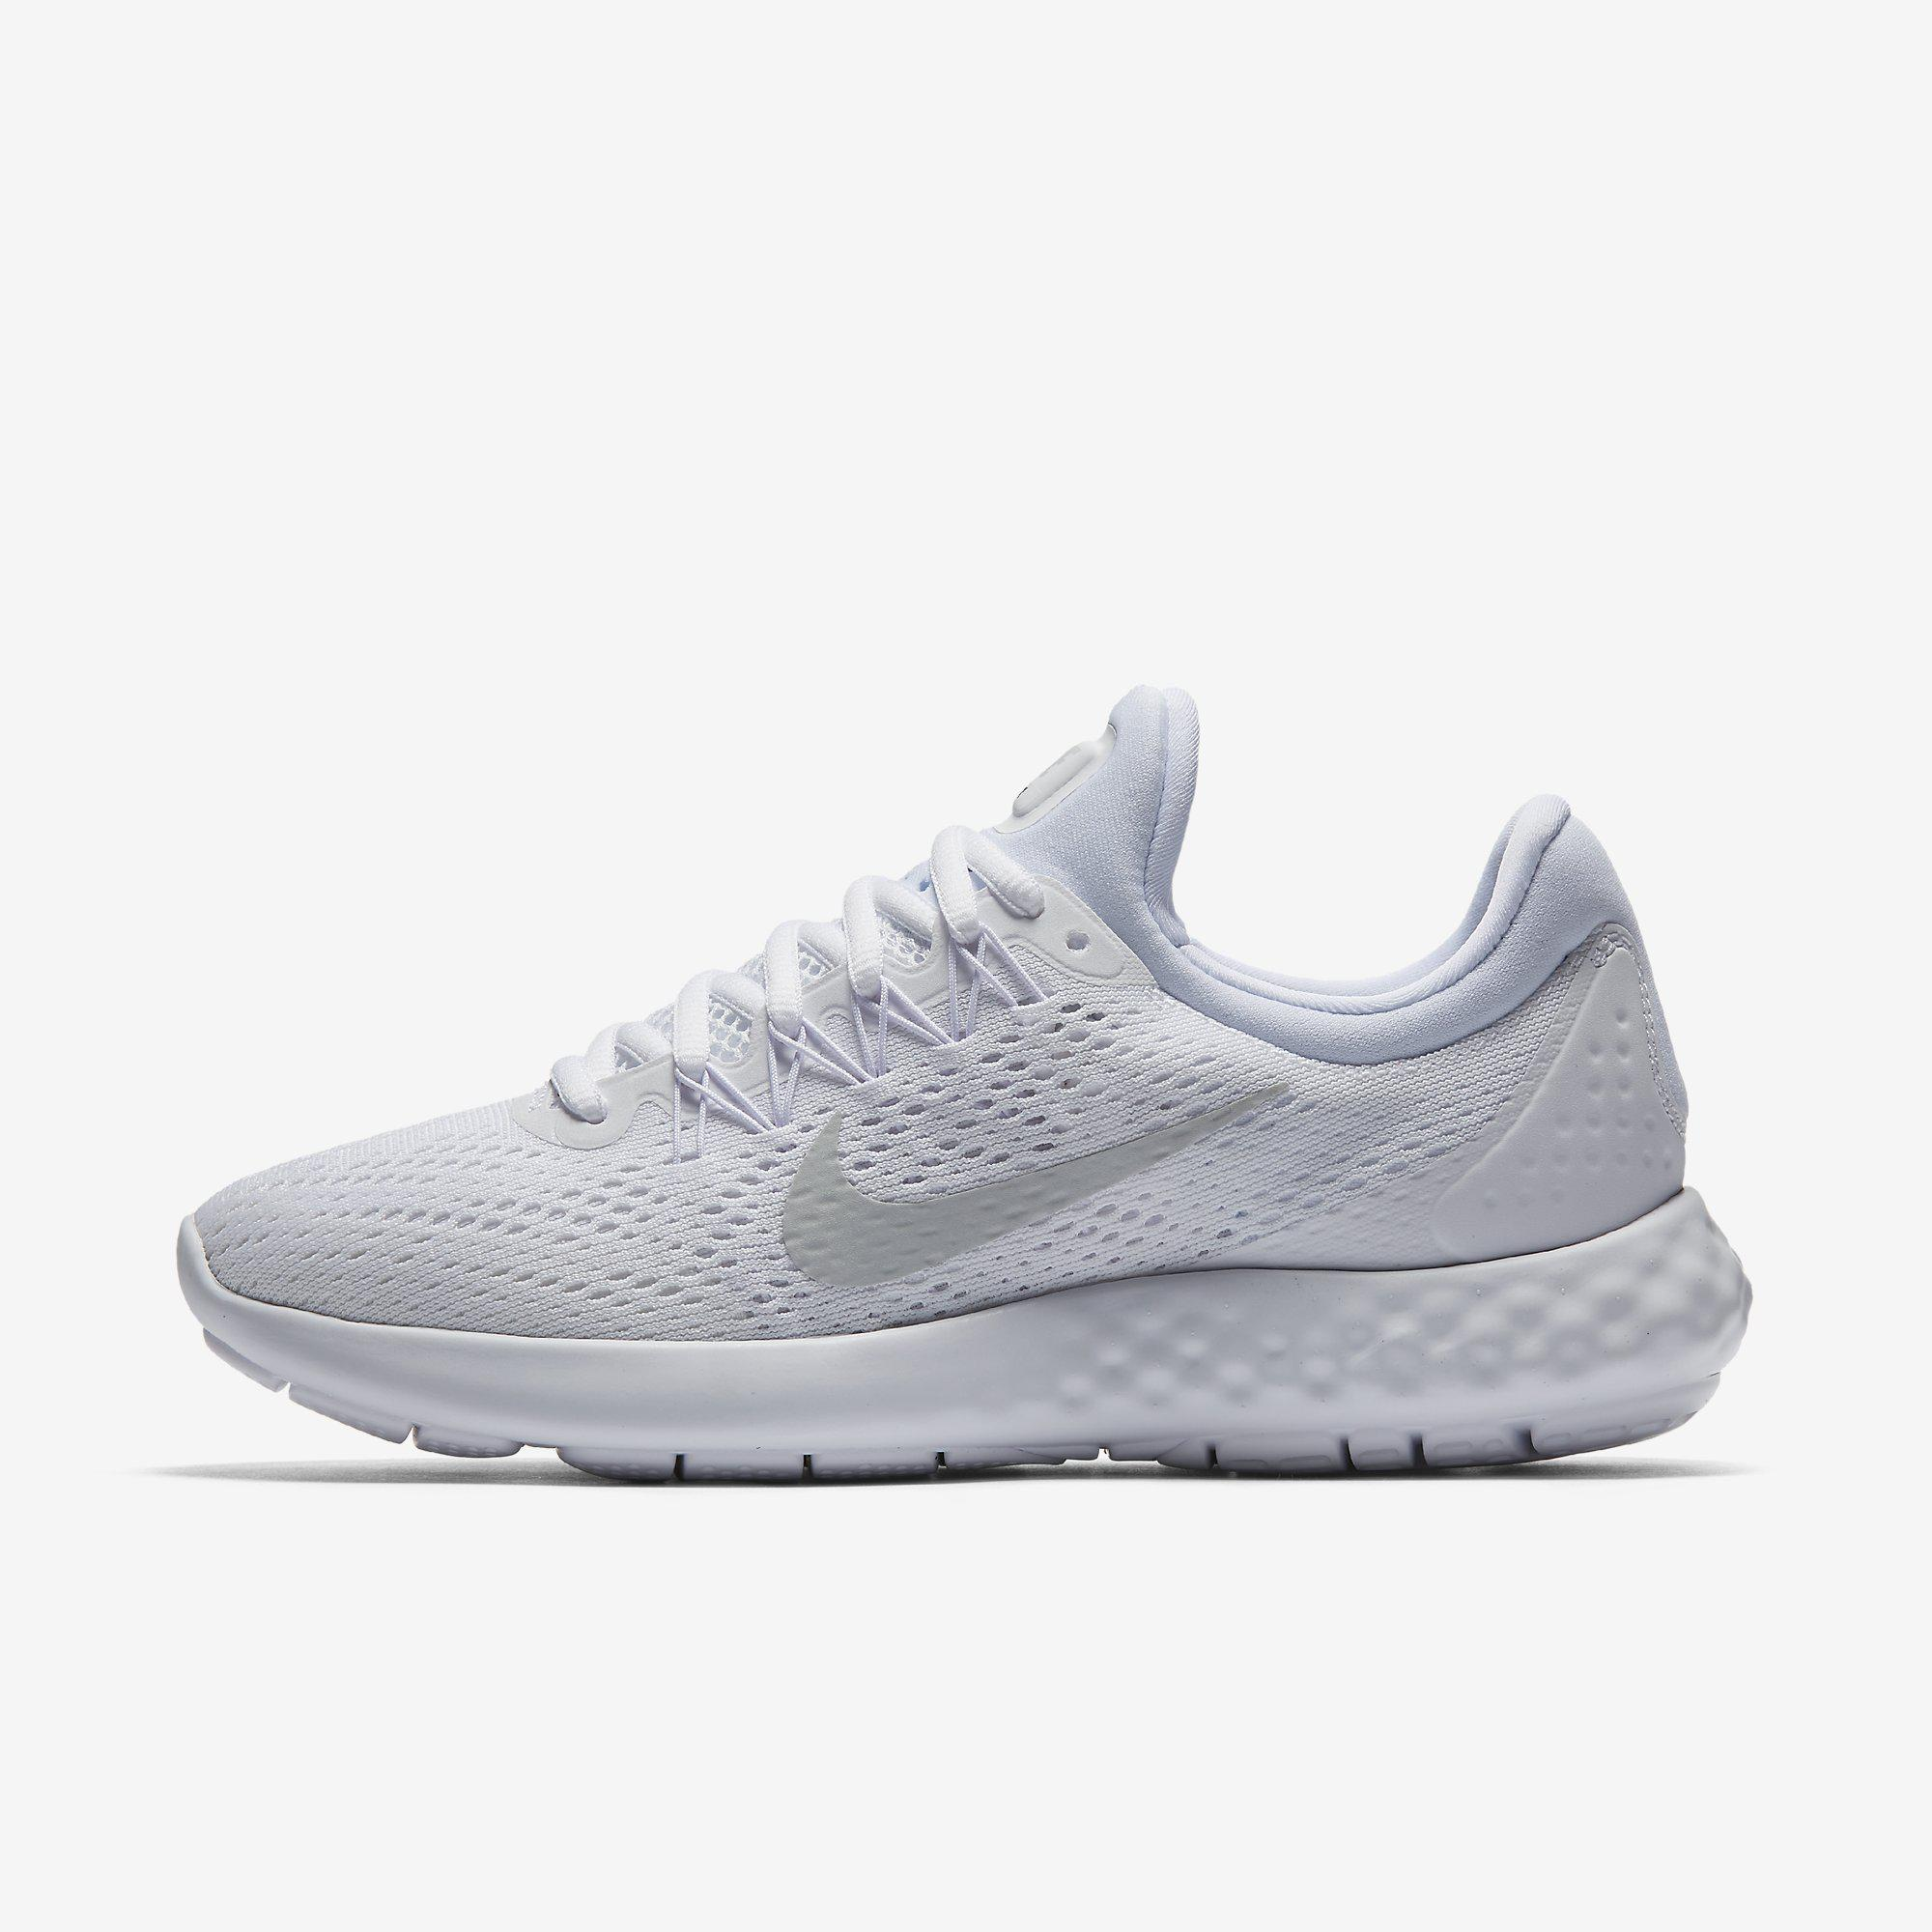 48b6c2e2adbd6 Nike Womens Lunar Skyelux Running Shoes - White - Tennisnuts.com